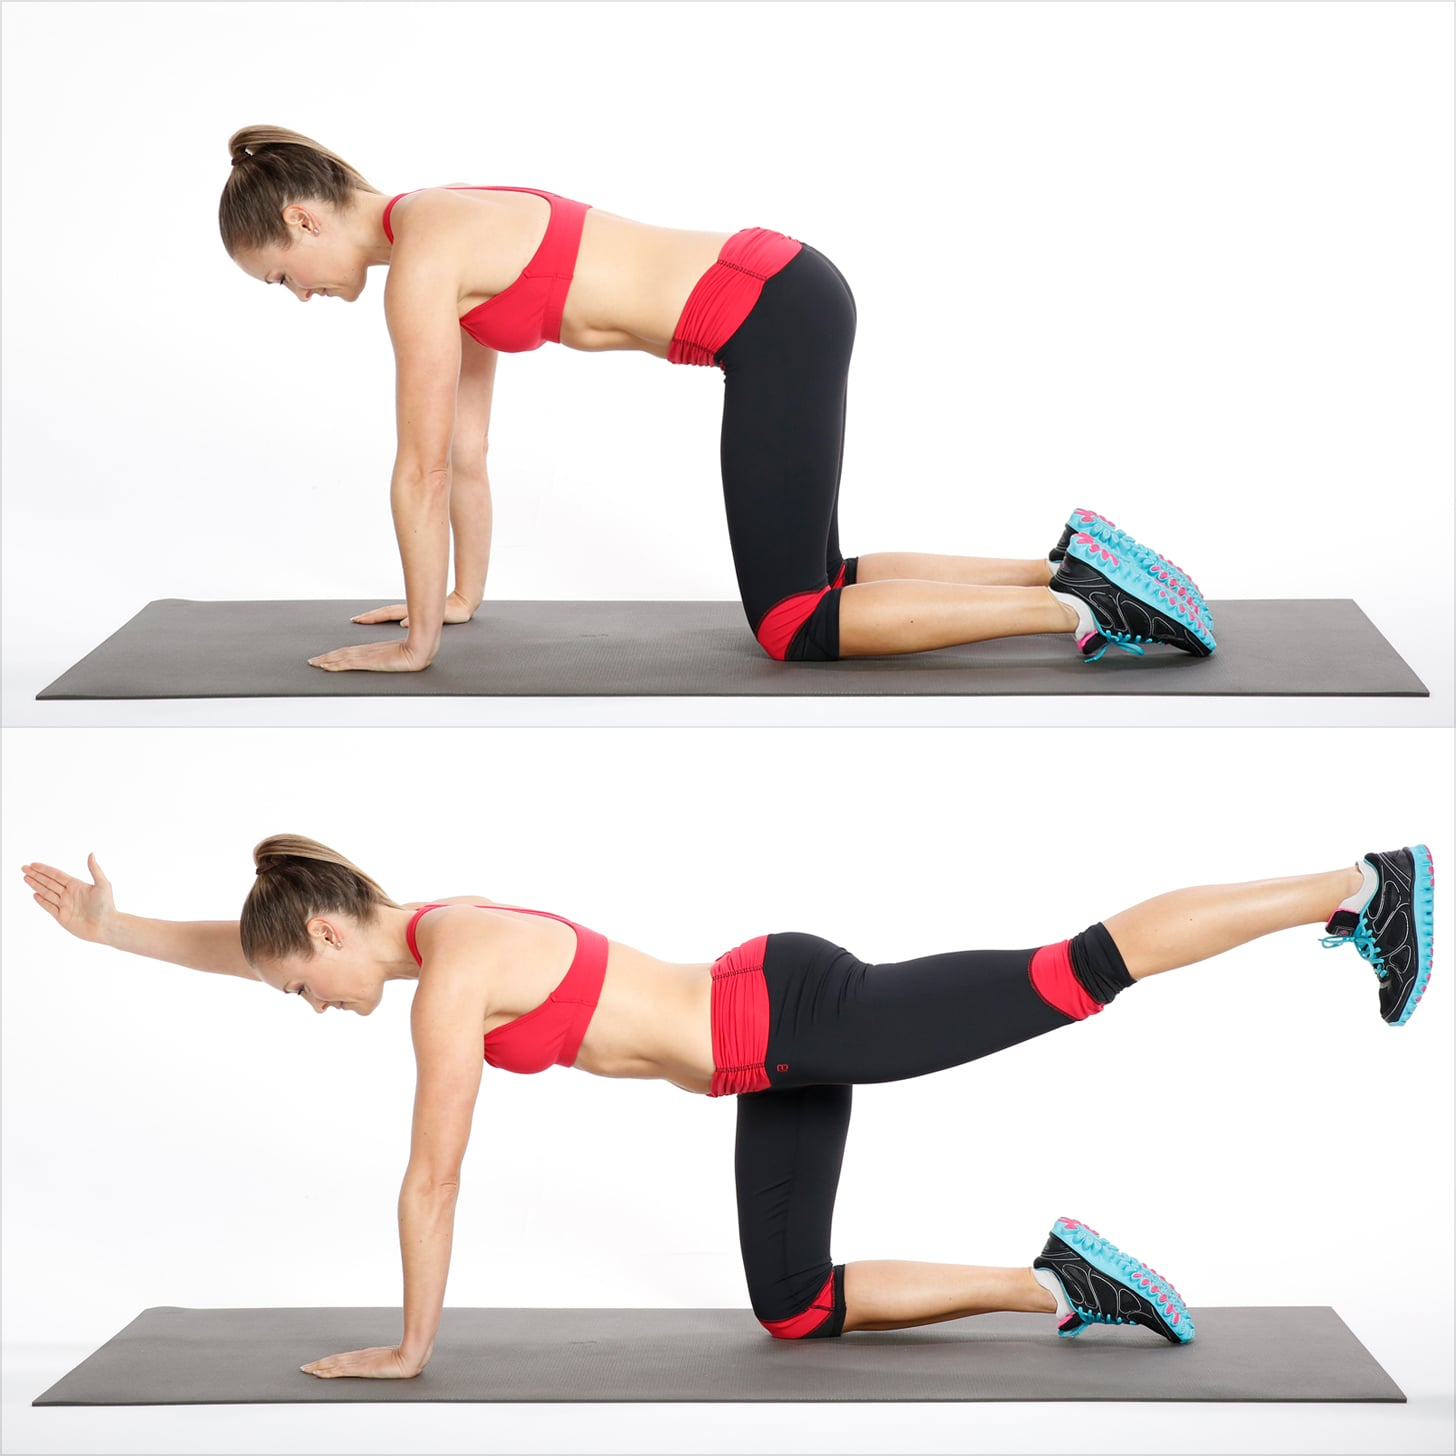 Exercises and stretches for Lower Back Pain